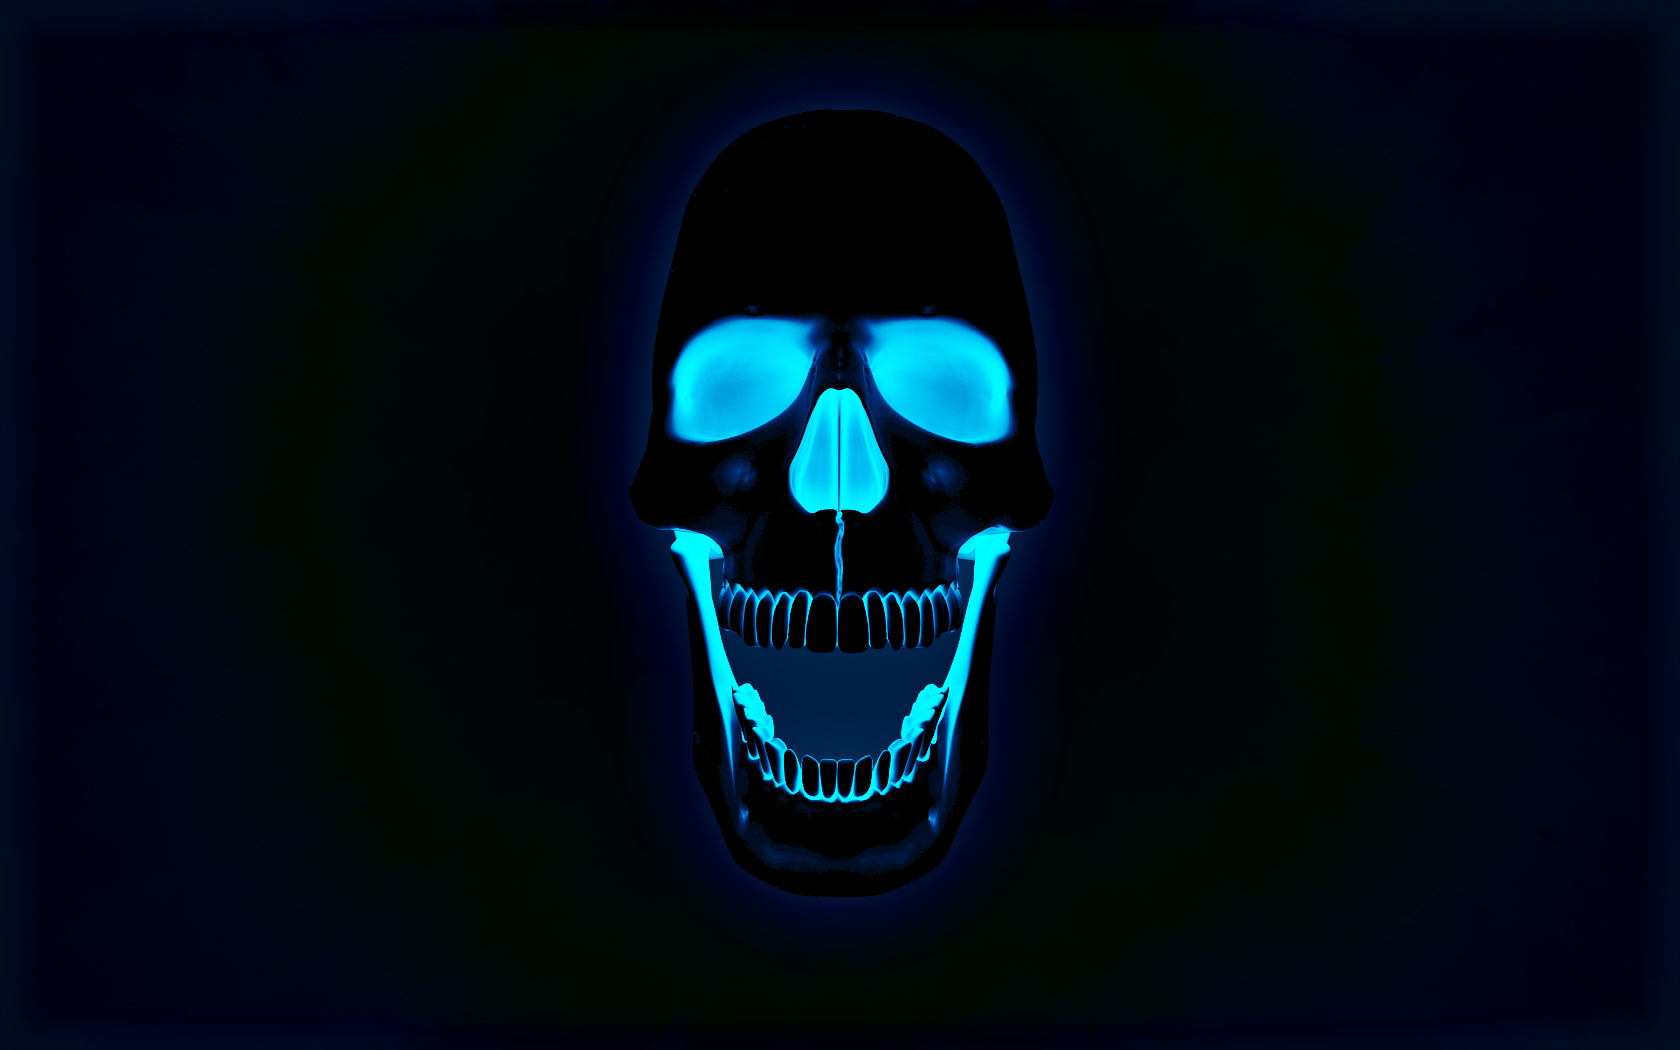 Hd Skull Wallpapers 1080p Wallpapersafari